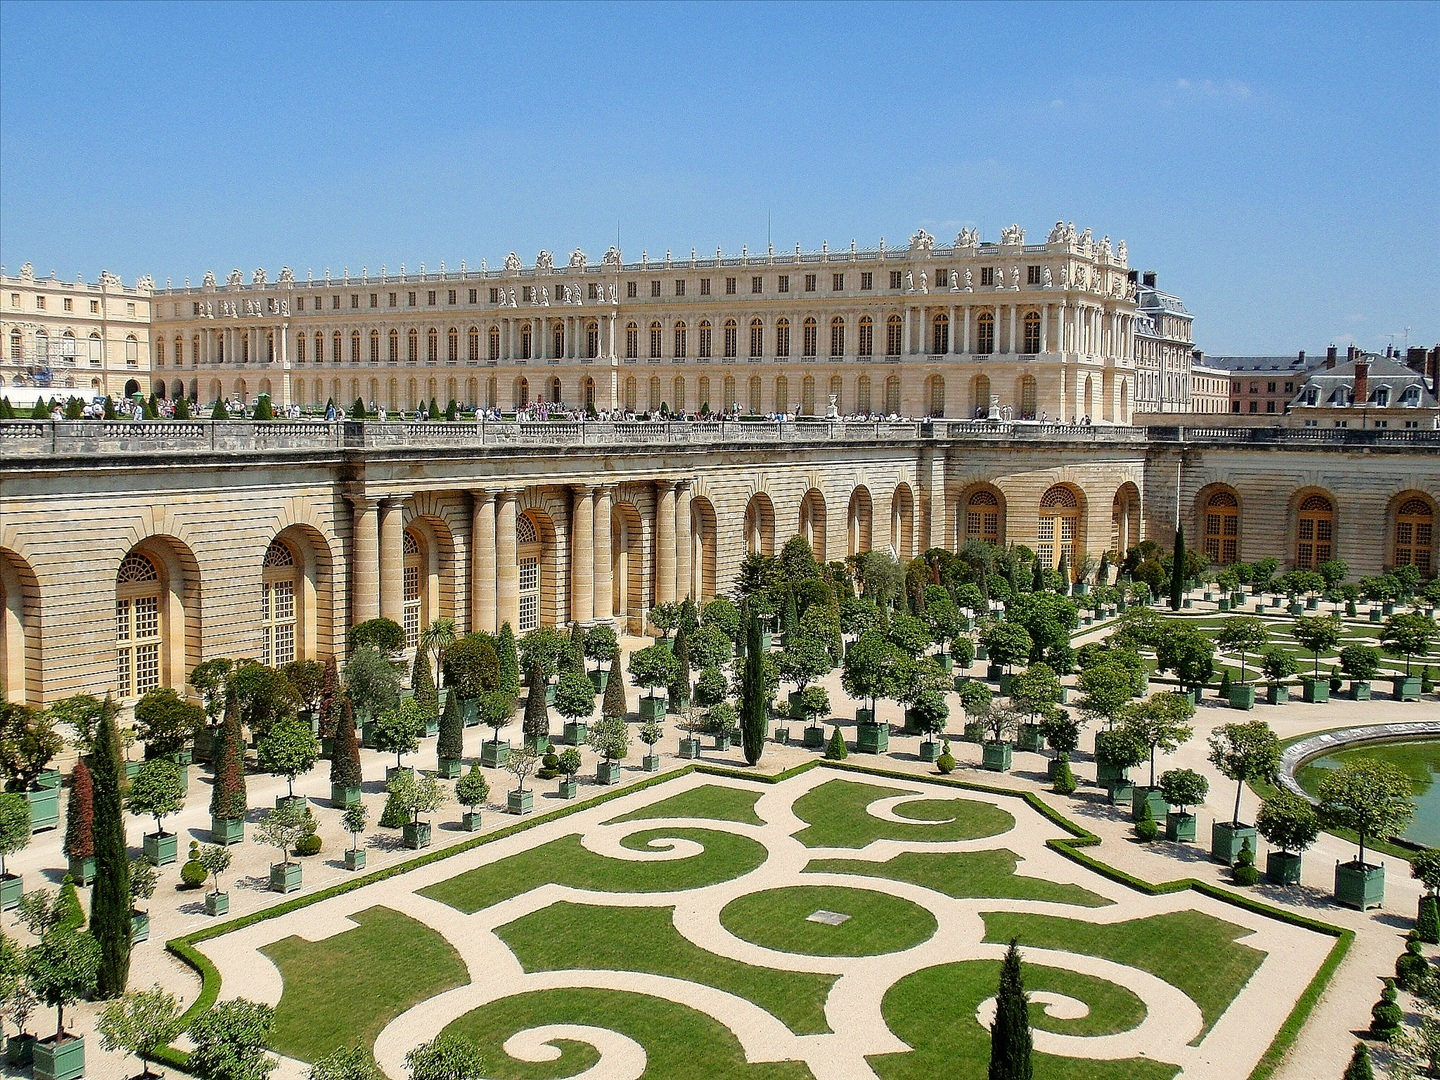 Palace of Versailles 3 HD Wallpaper Landmarks Wallpapers 1440x1080